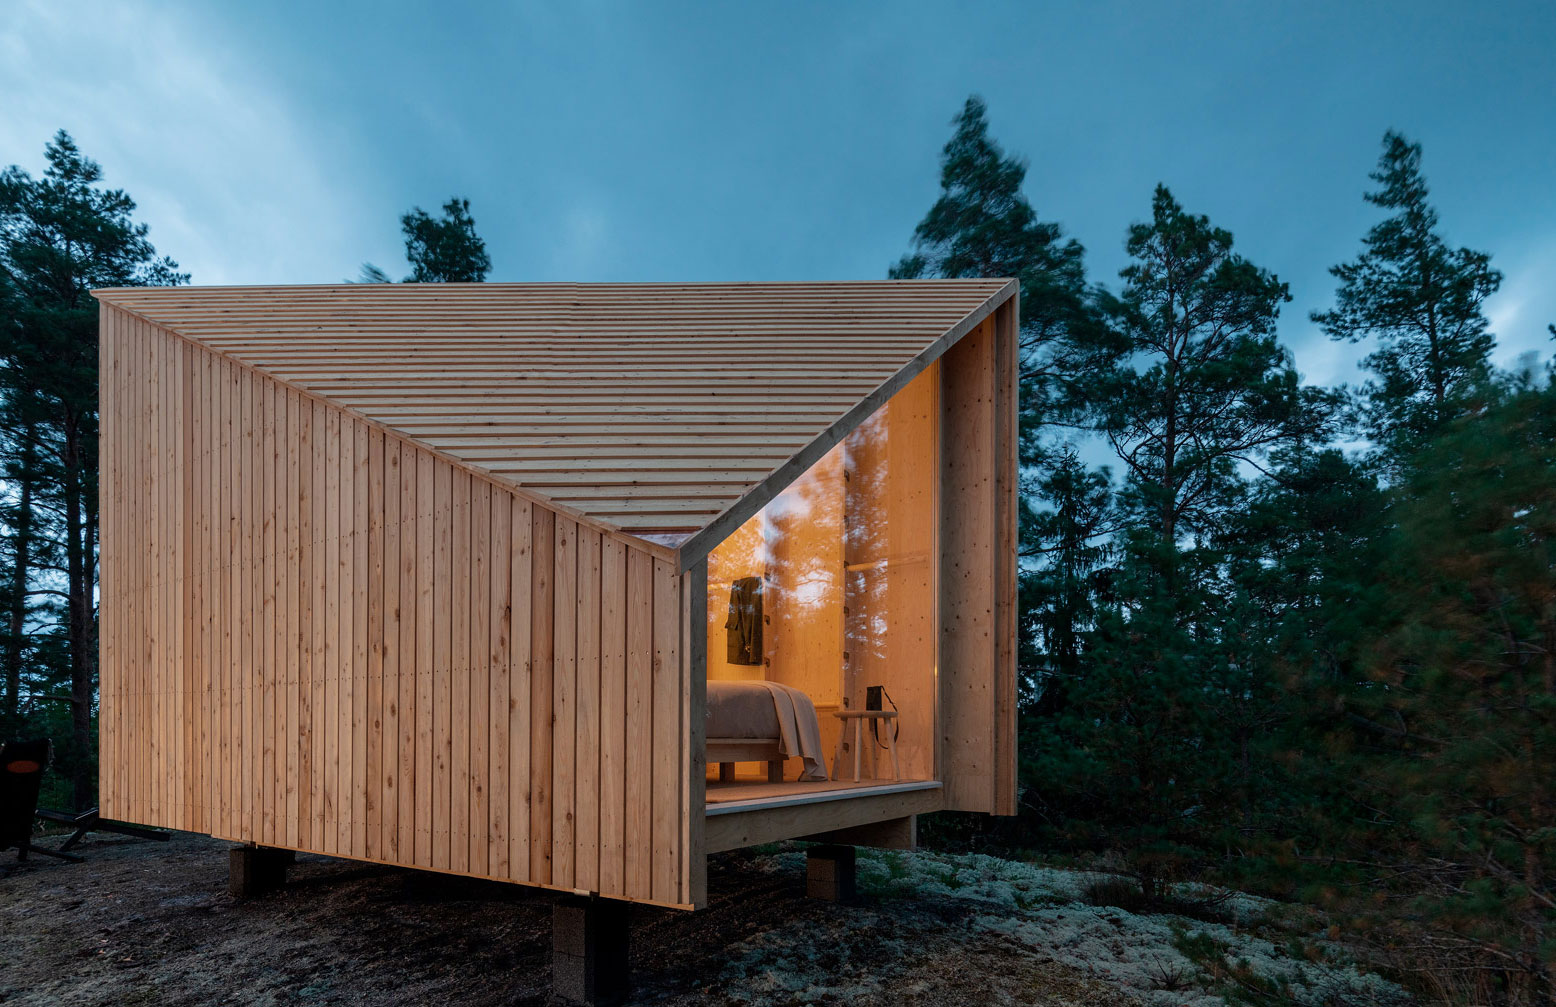 This prefab cabin is light enough to be transported to its final destination by helicopter, allowing it to pop up in secluded spots worldwide.